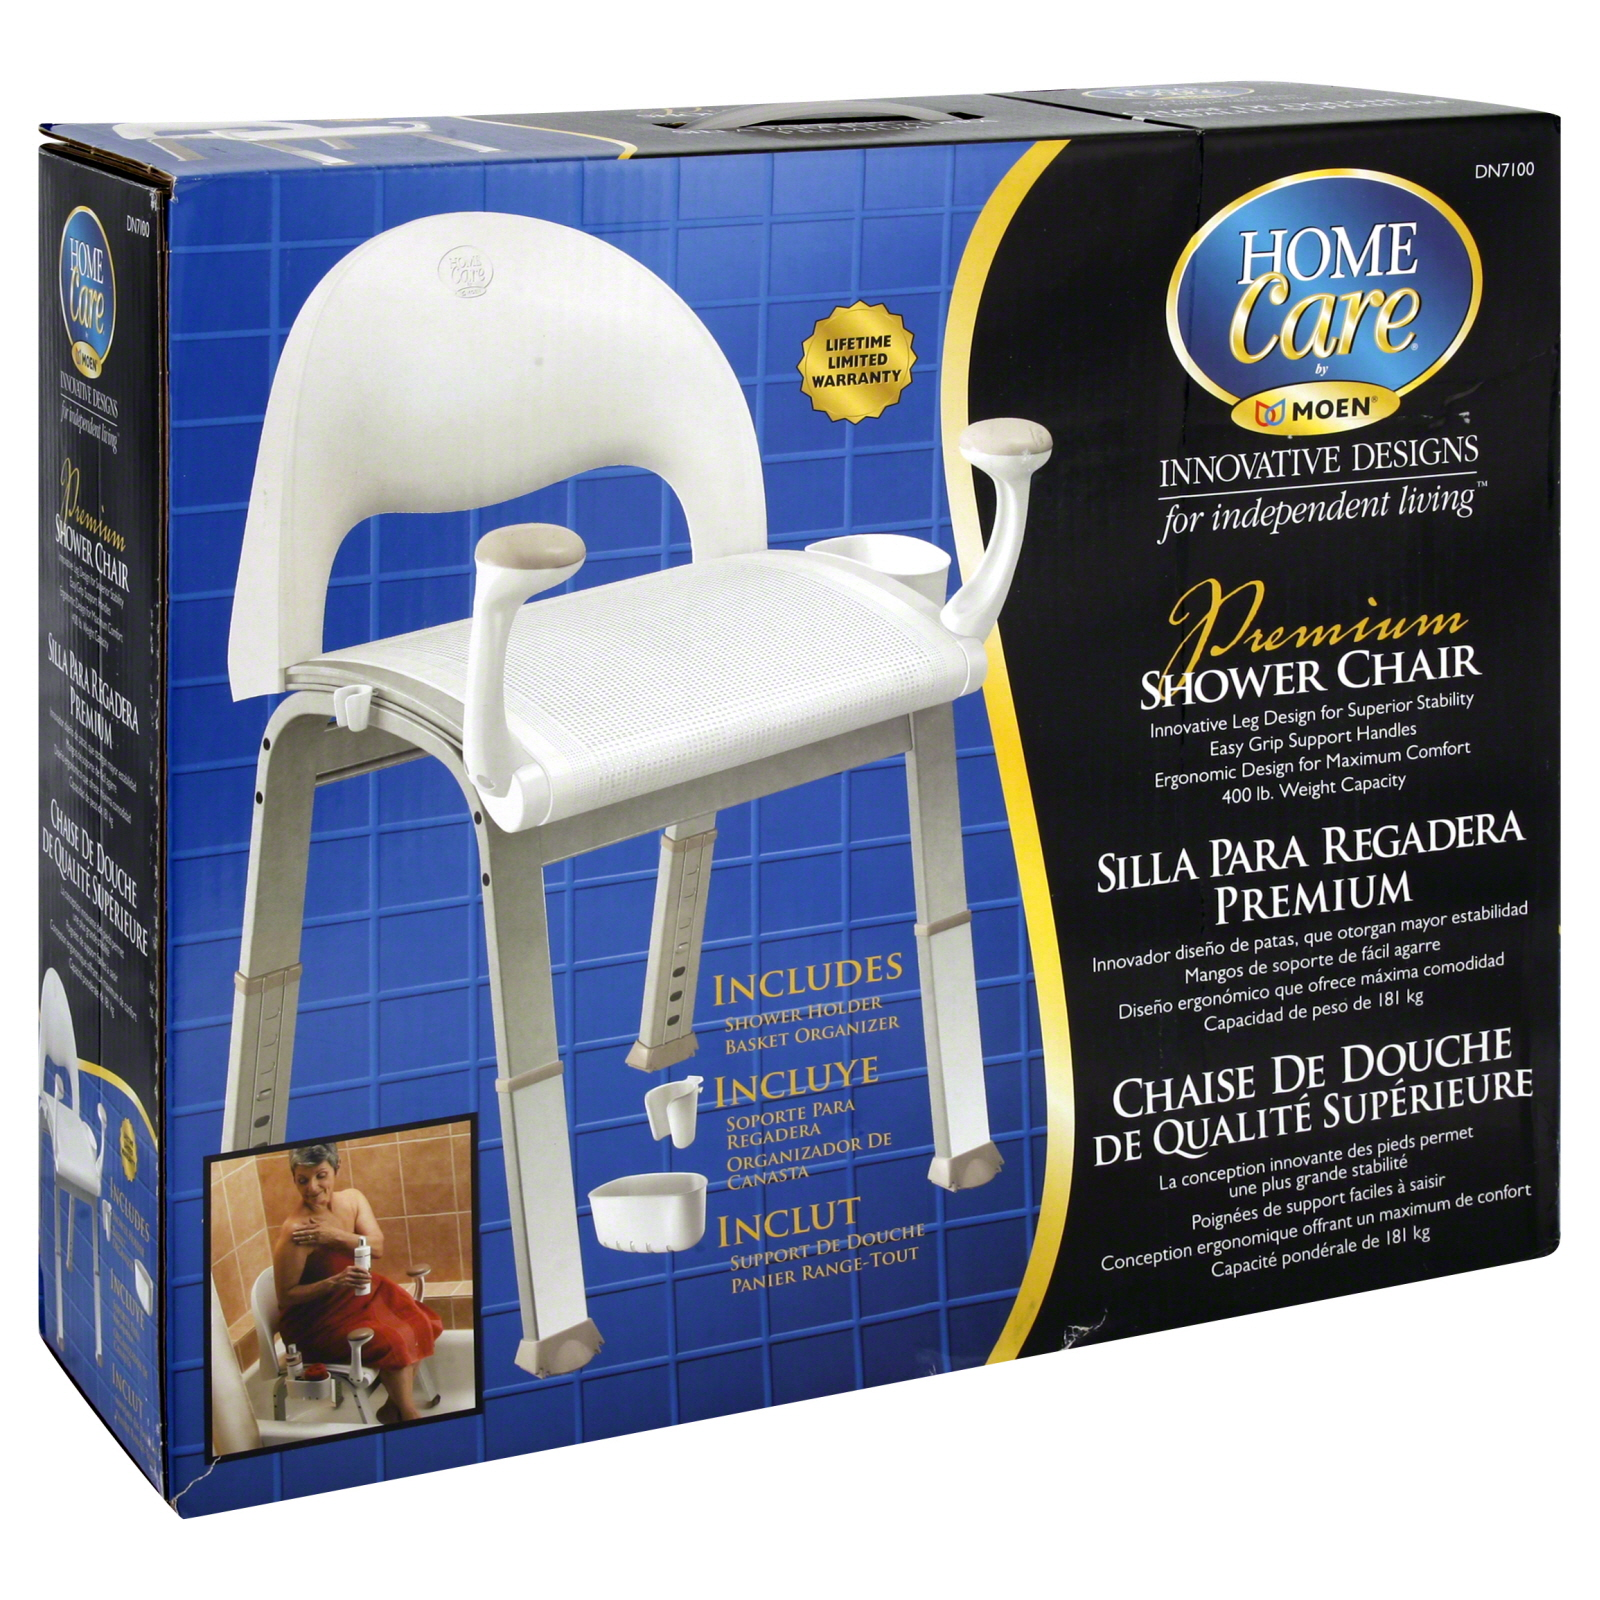 Moen Shower Chair Moen Home Care Shower Chair Review Home Co